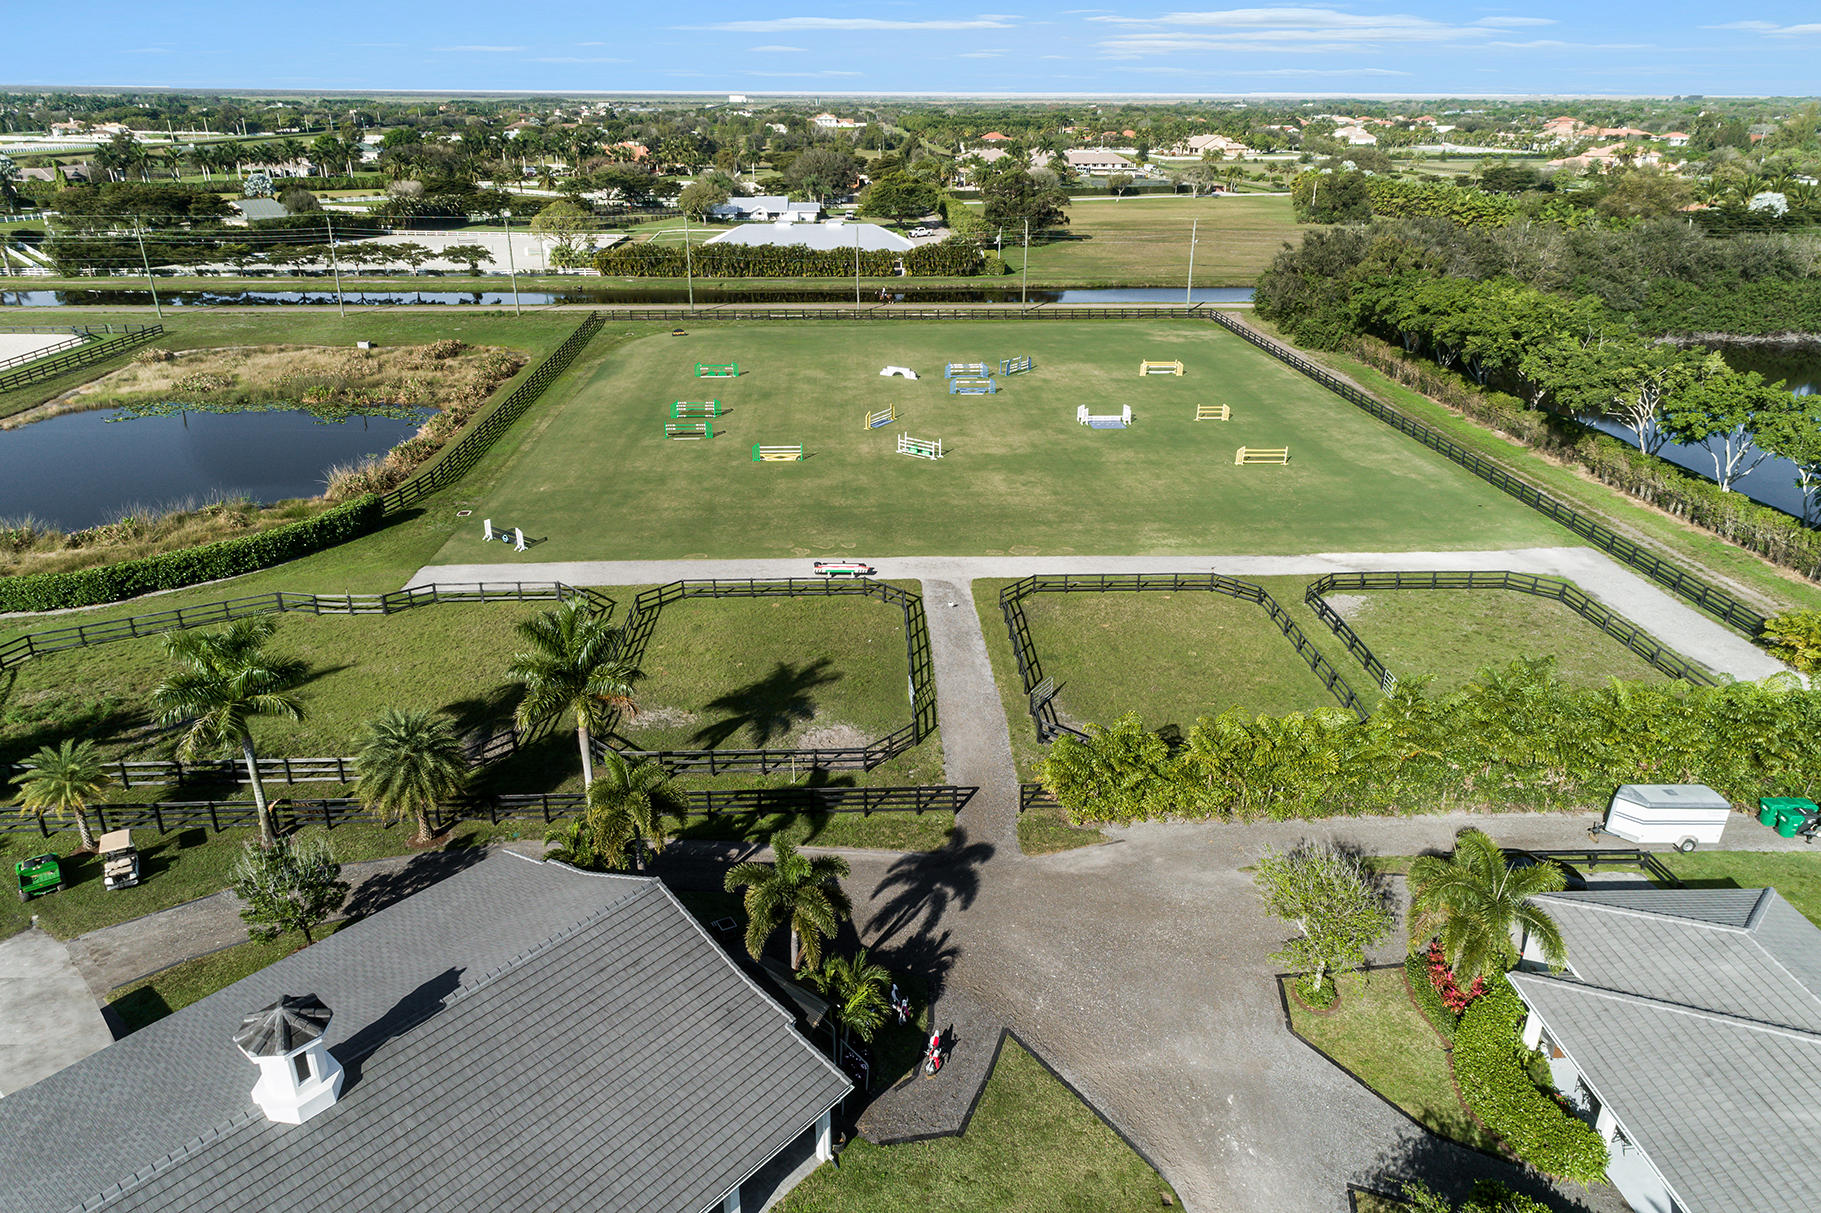 3794 Shutterfly Way, Wellington, Florida 33414, 2 Bedrooms Bedrooms, ,2.1 BathroomsBathrooms,Single Family,For Sale,Grand Prix Village South,Shutterfly,1,RX-10604364